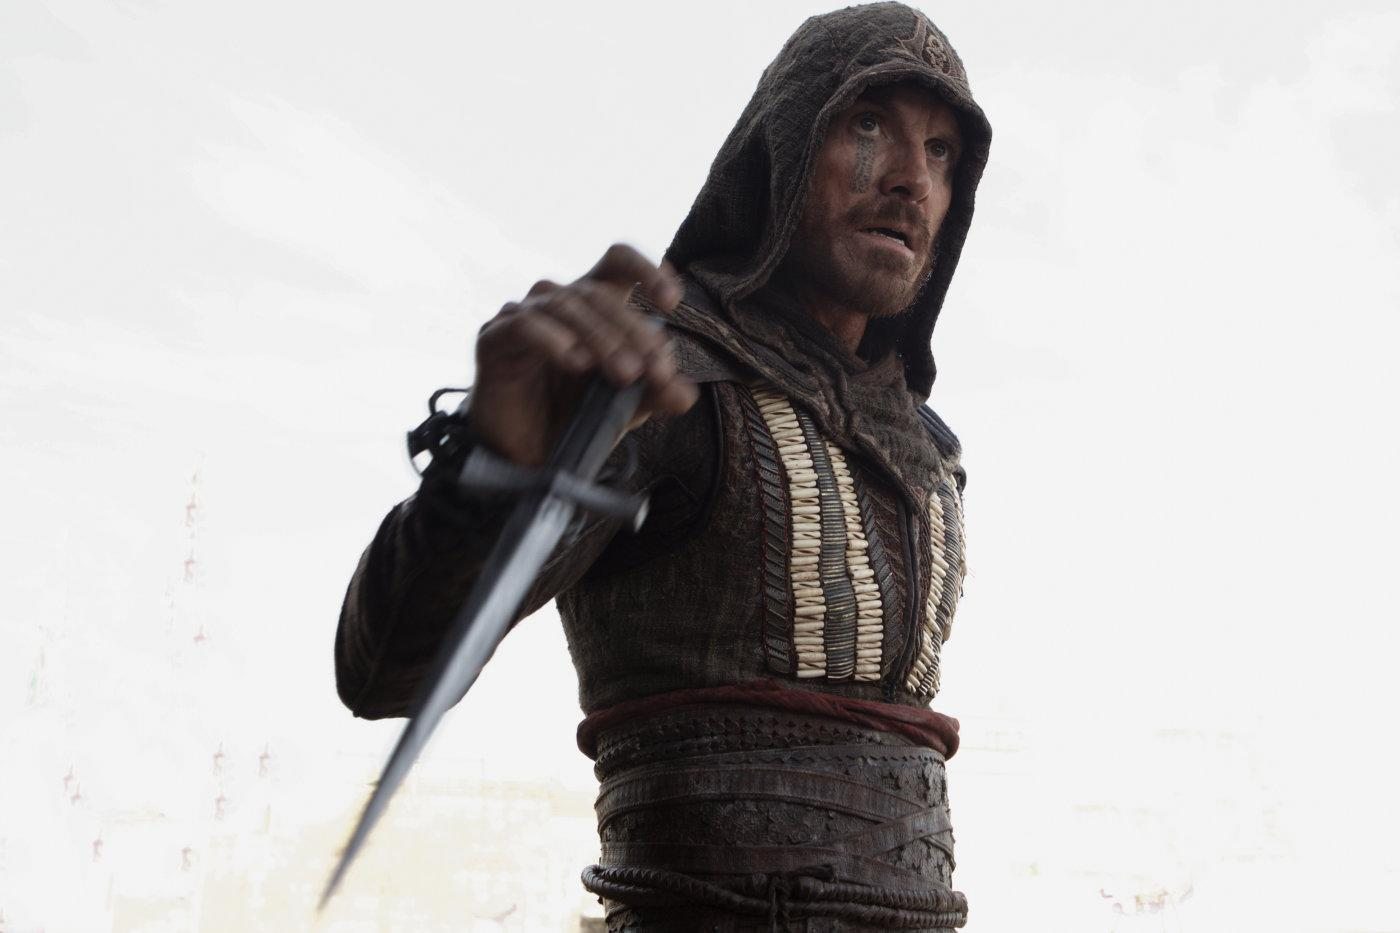 Michael Fassbender in a still from Justin Kurzel's <i>Assassin's Creed</i> movie. (20th Century Fox)